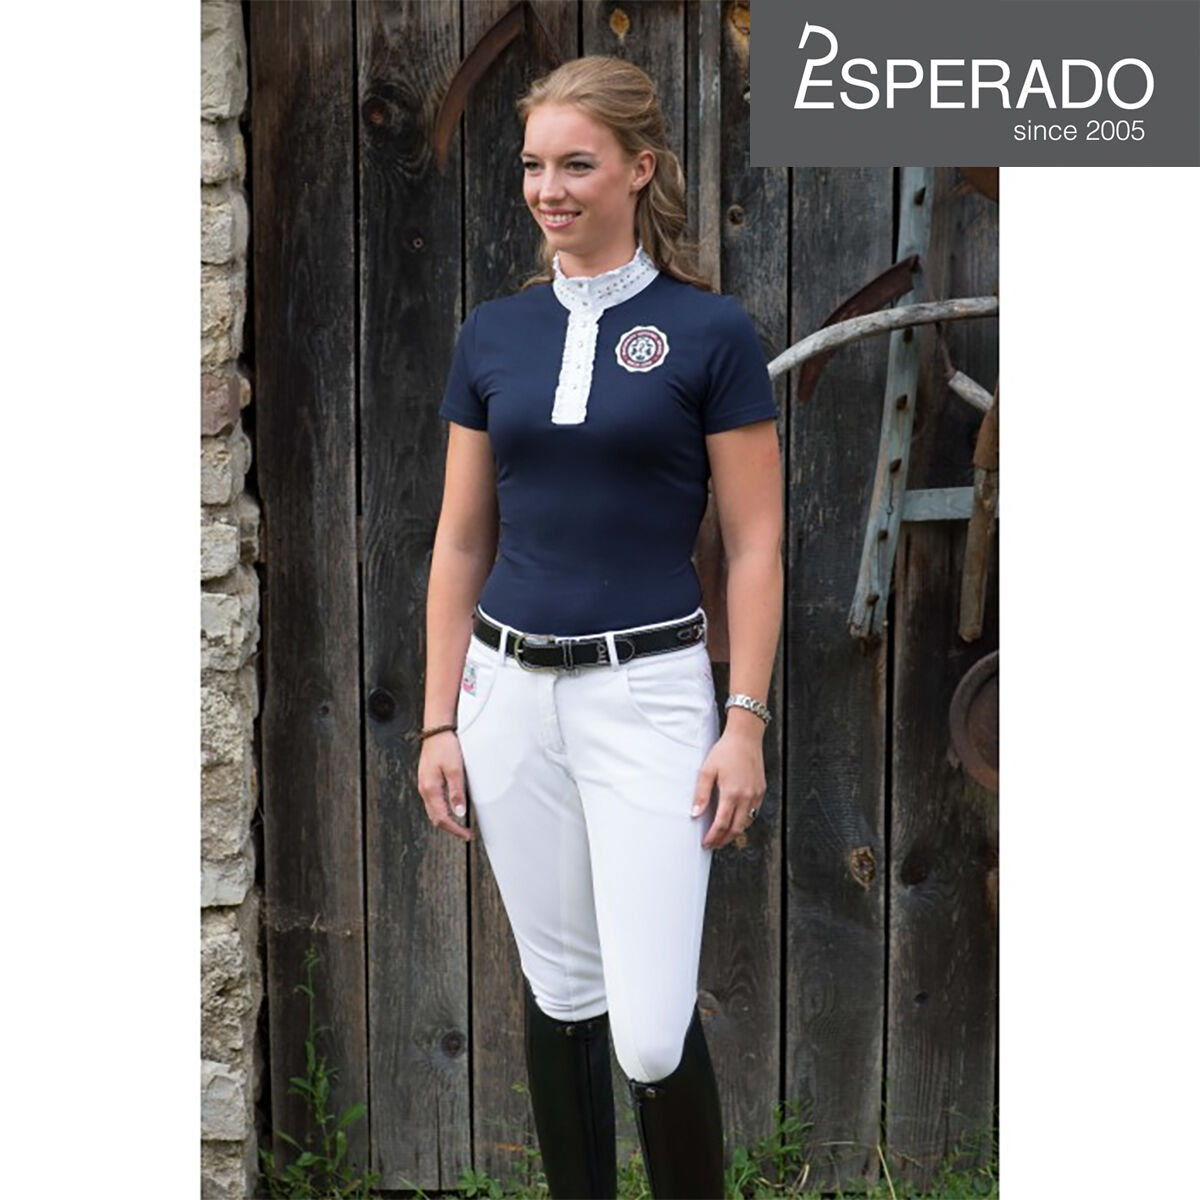 Esperado Miami Ladies Show Shirt - Sale